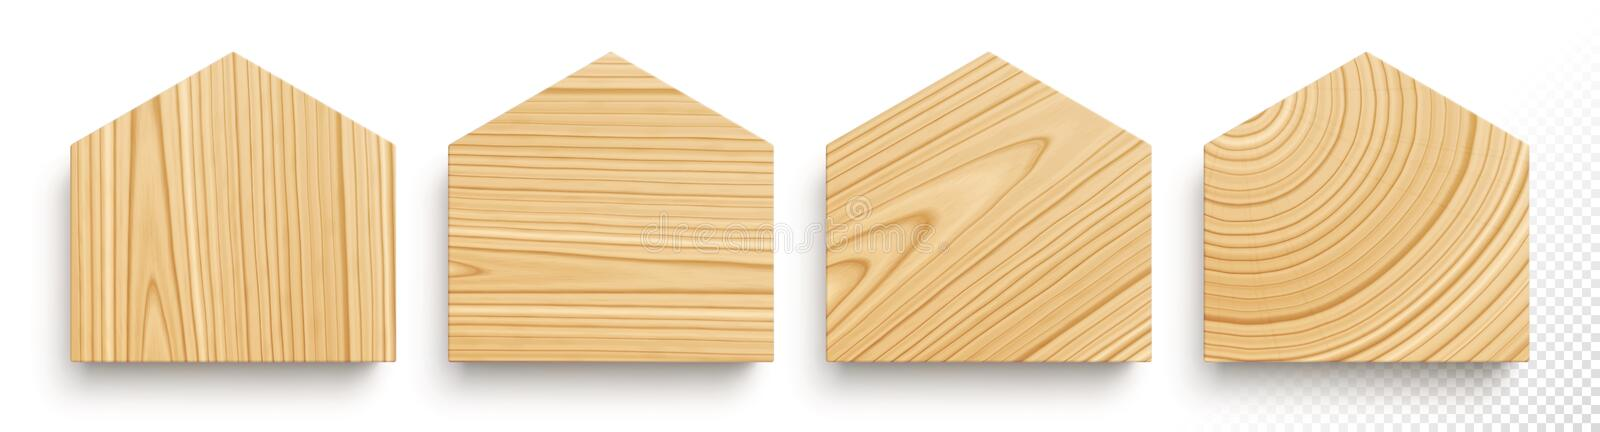 Set of wooden boards in shape of houses with different textures vector illustration